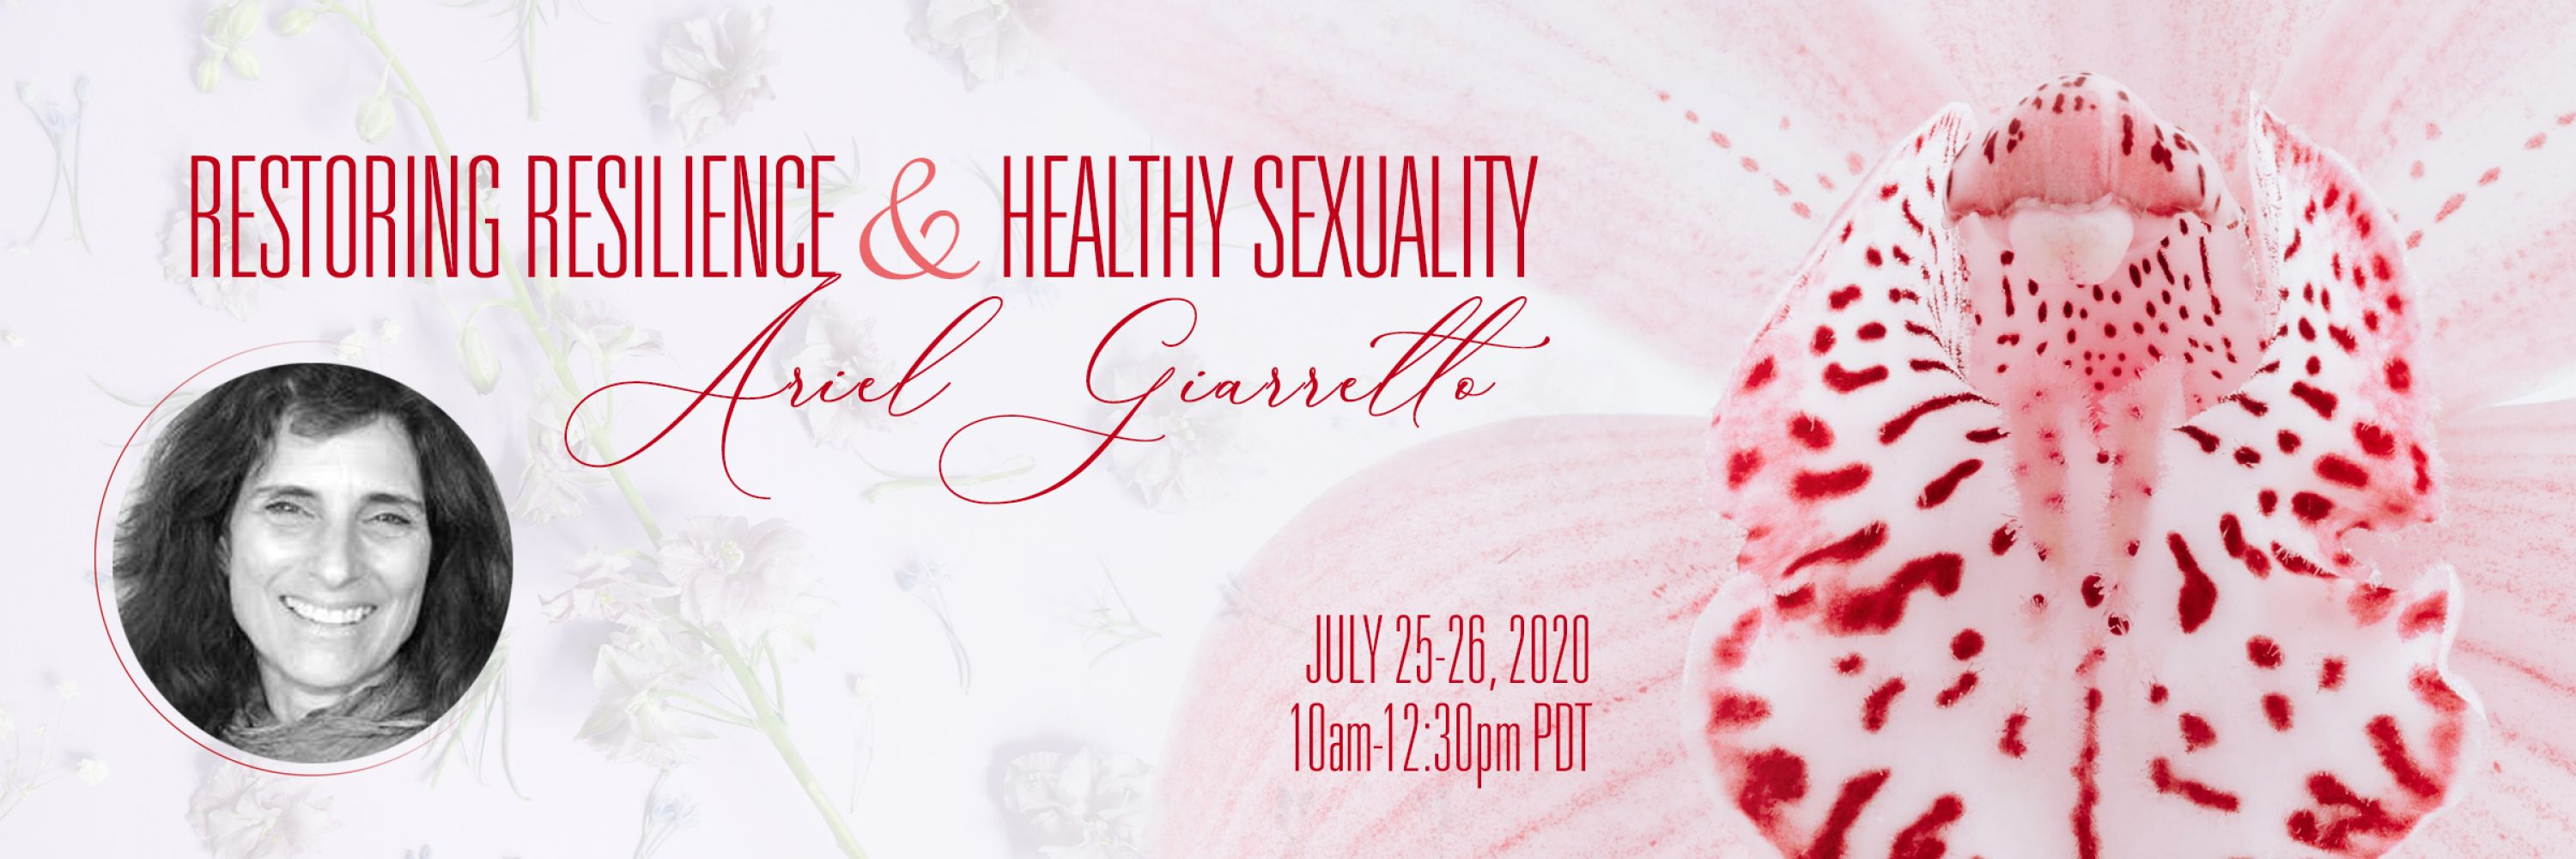 Restoring Resilience & Healthy Sexuality